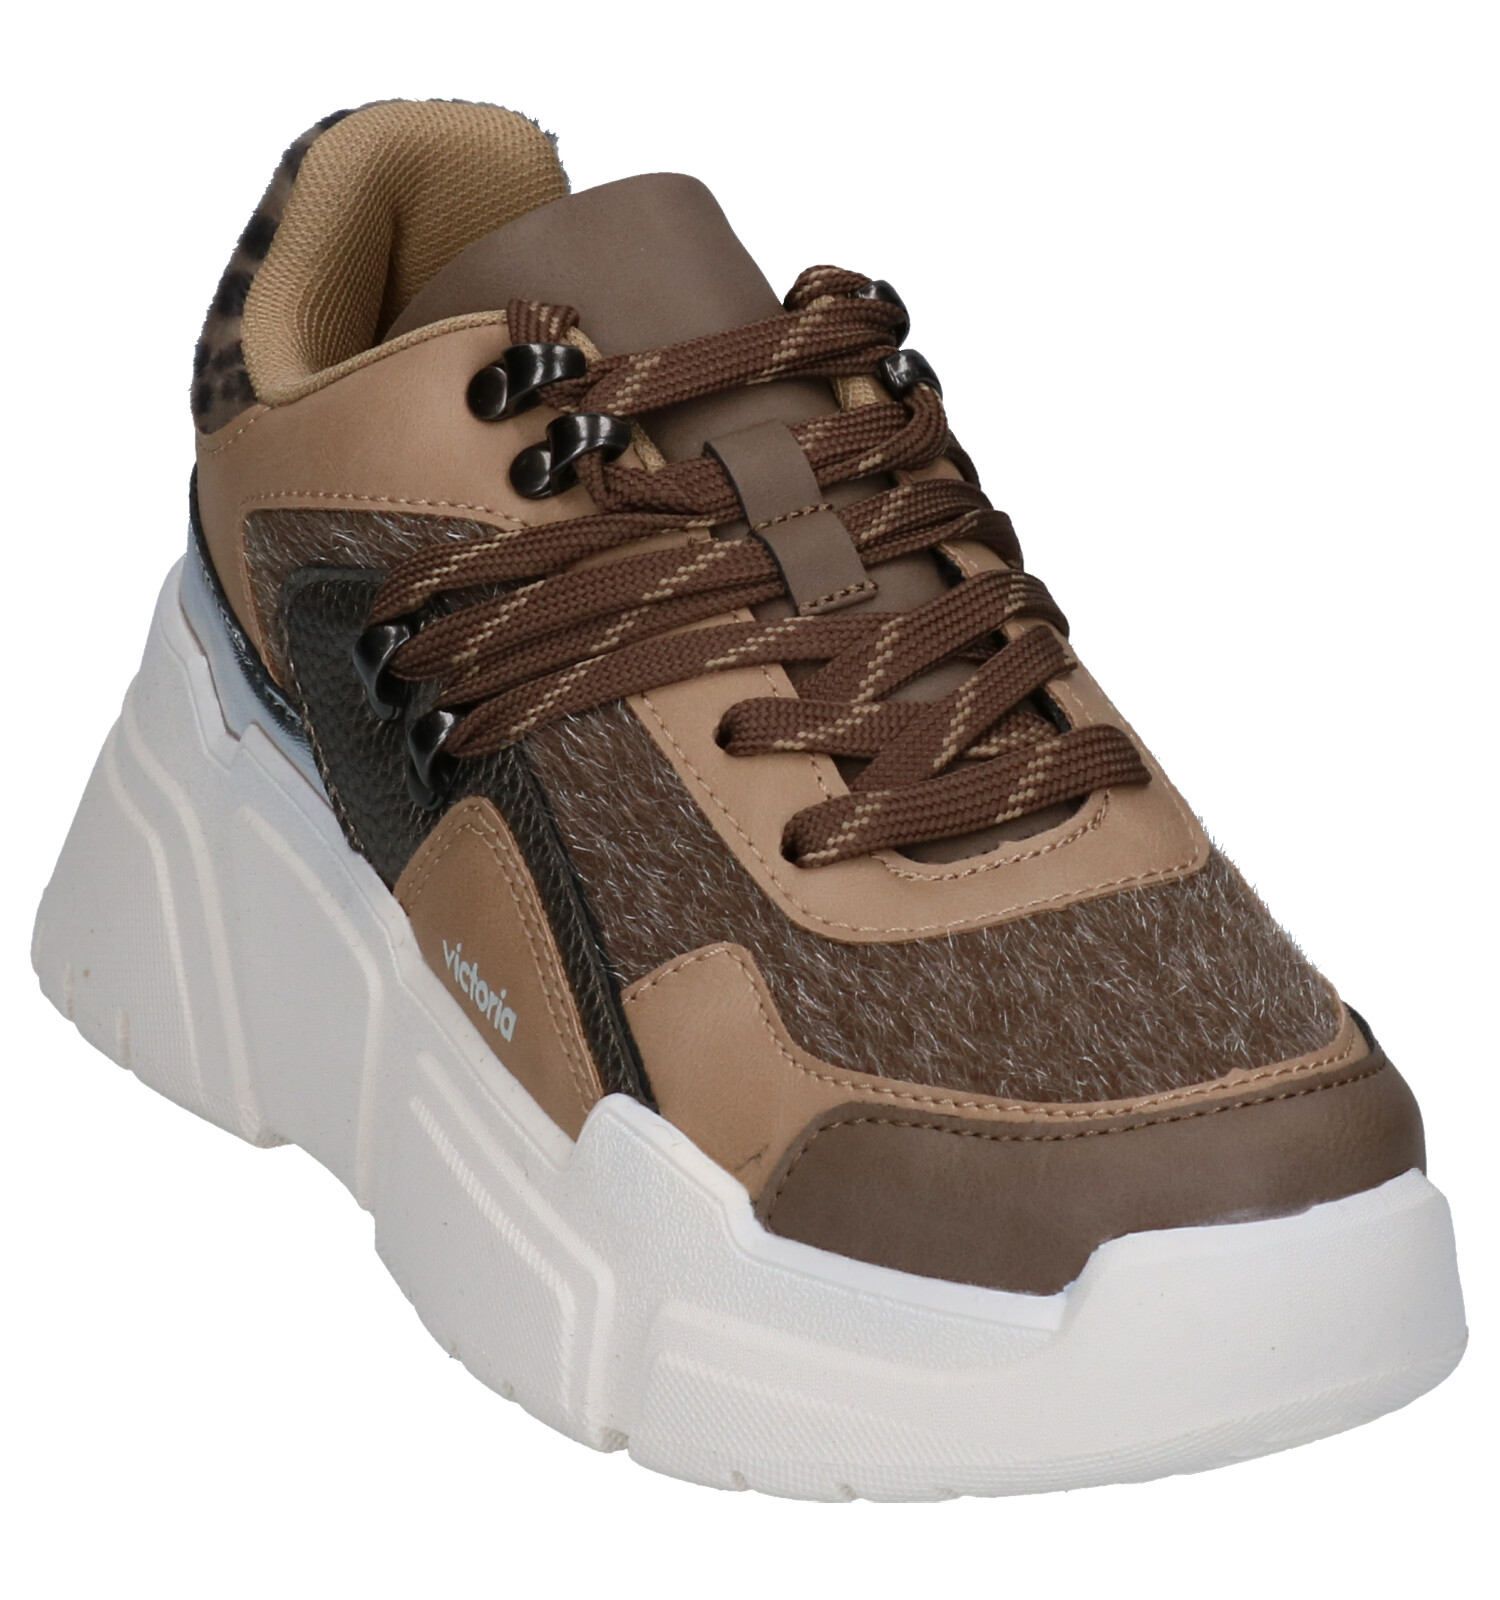 Taupe Victoria Taupe Sneakers Taupe Victoria Taupe Sneakers Victoria Victoria Sneakers T1c3JFKl